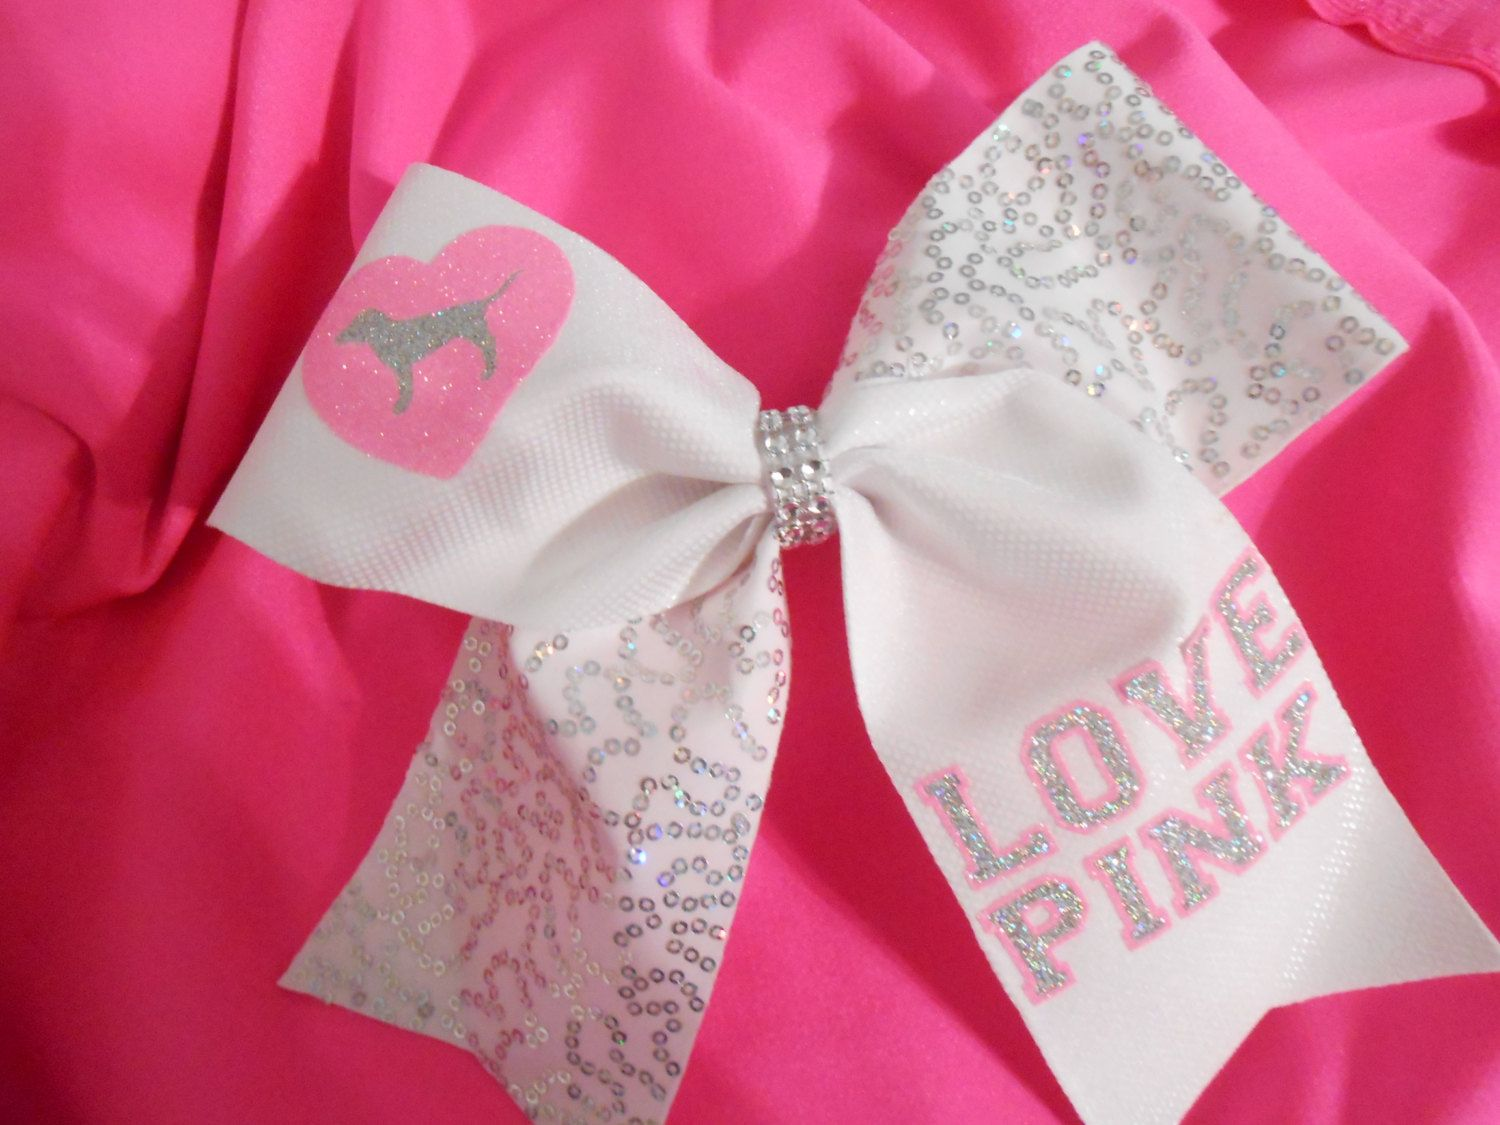 "Love Pink Cheer Bow Inspired by Victoria Secret ""Love Pink"" by SportingPrideBows on Etsy https://www.etsy.com/listing/216454550/love-pink-cheer-bow-inspired-by-victoria"